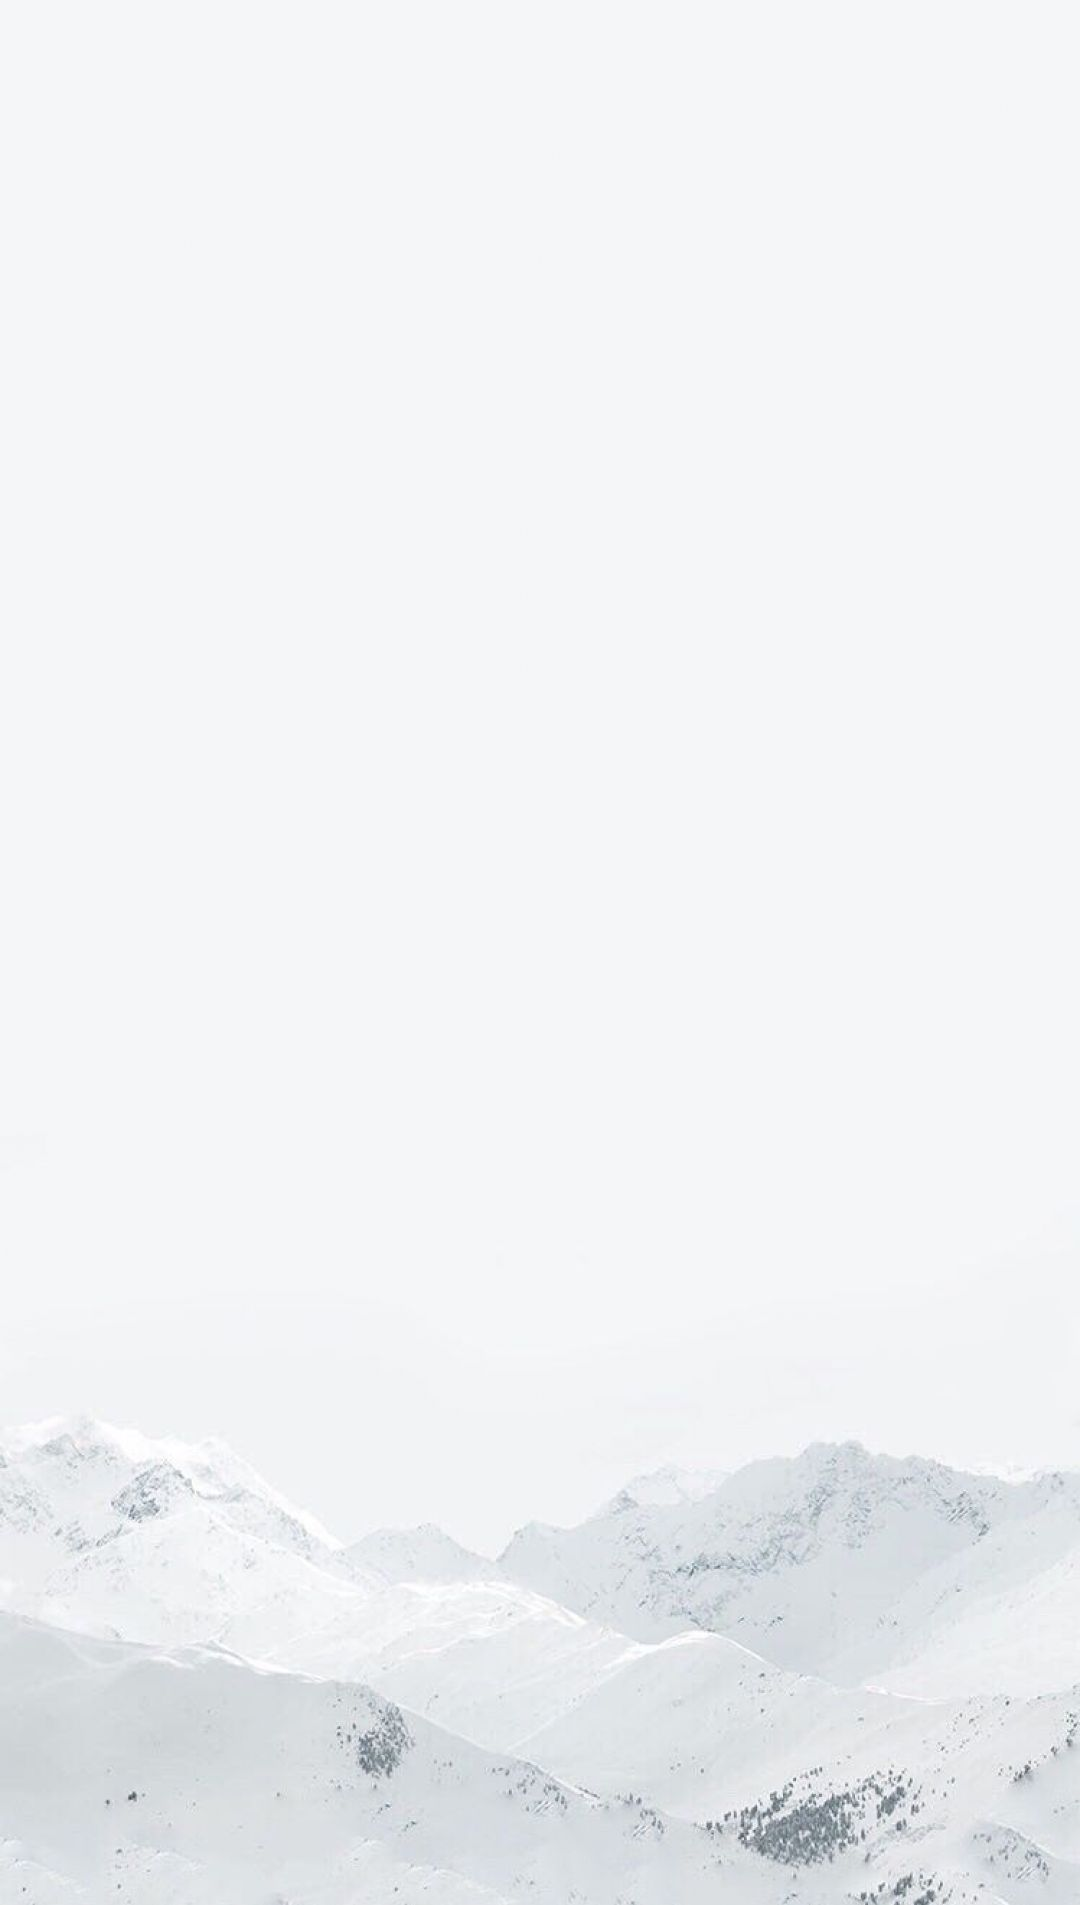 Winter Android Iphone Desktop Hd Backgrounds Wallpapers 1080p 4k 125001 Hd White Wallpaper For Iphone Iphone Wallpaper Winter Pure White Wallpaper